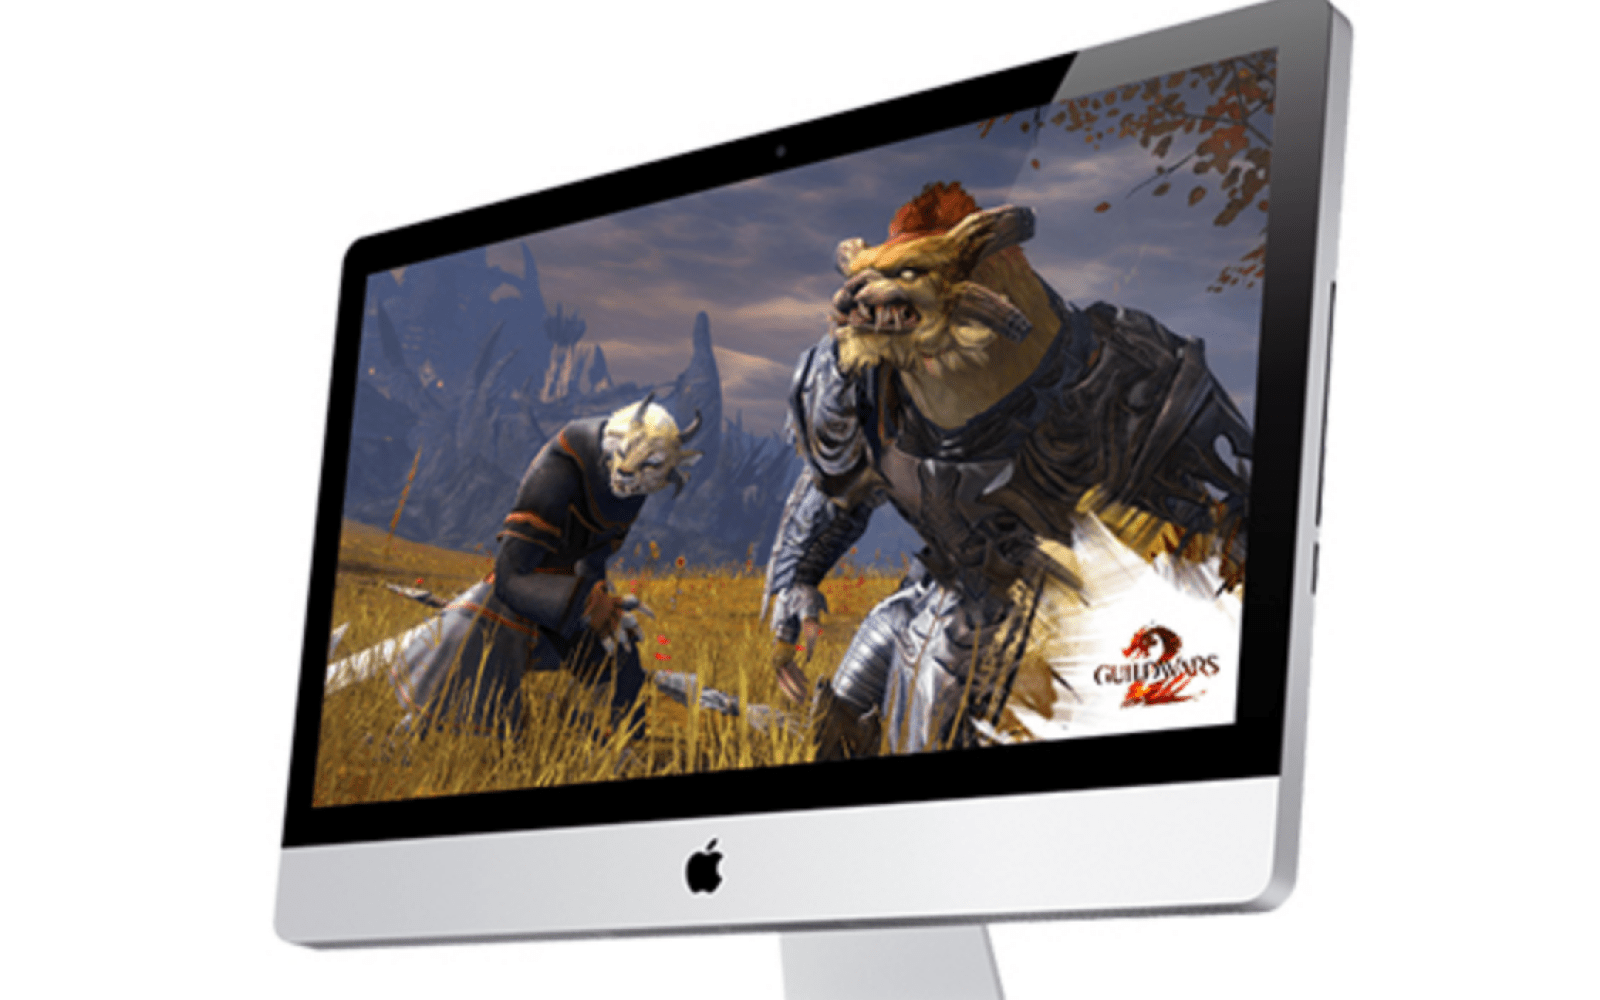 Guild Wars 2 comes to Mac OS X in beta, shares live servers